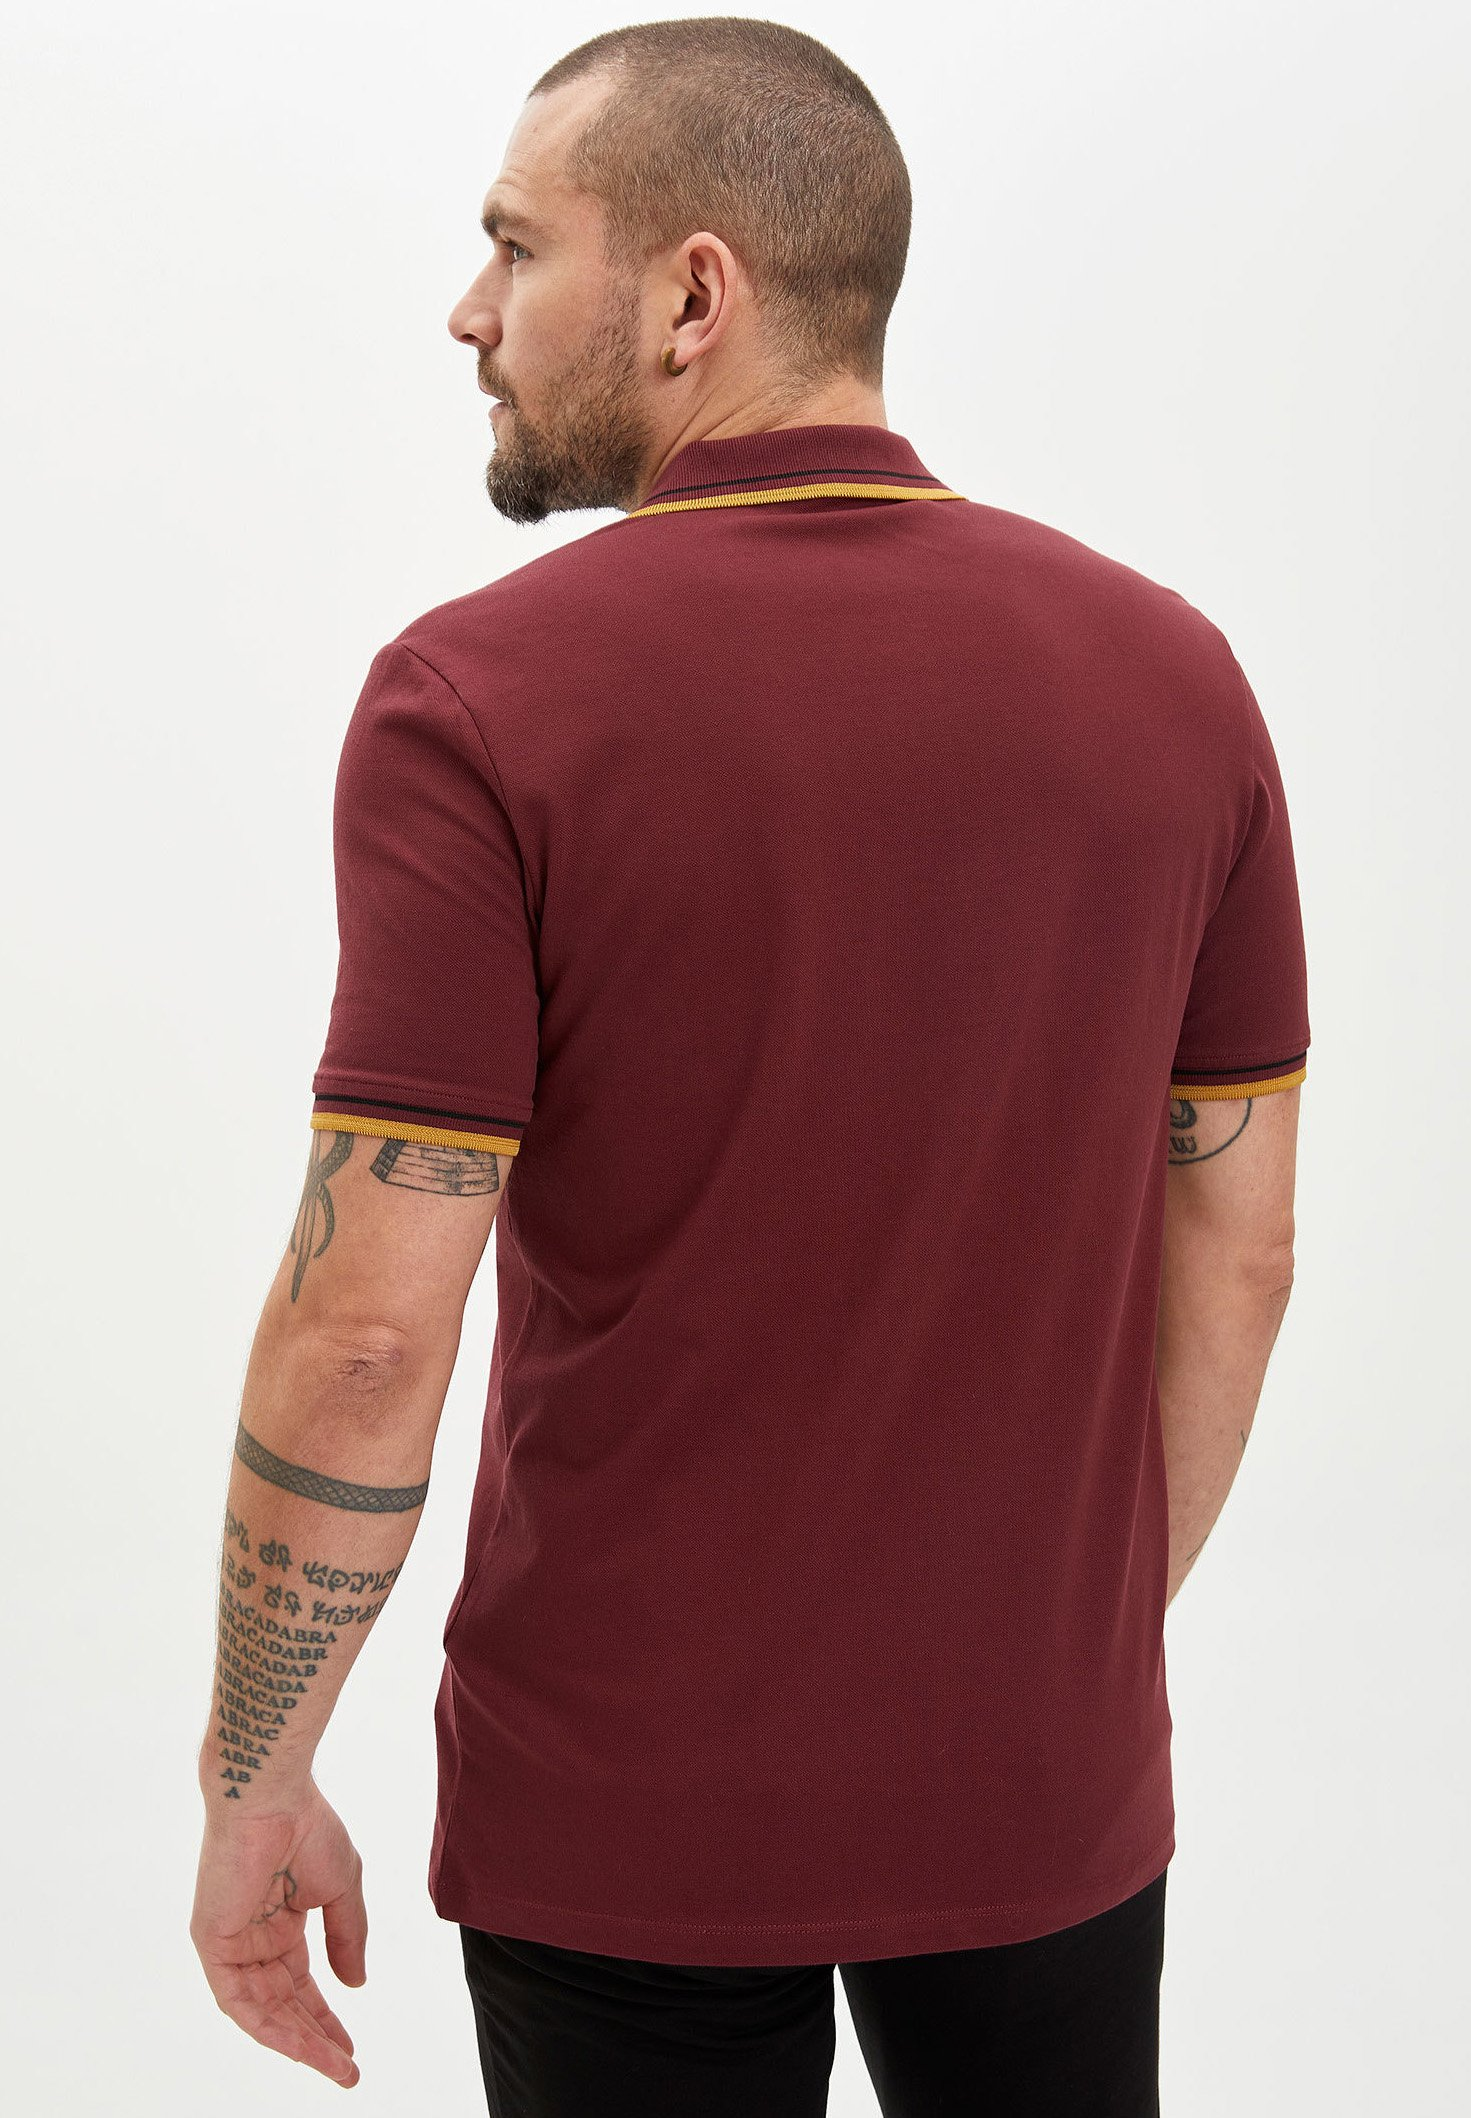 DeFacto Polo shirt - bordeaux xcVVI